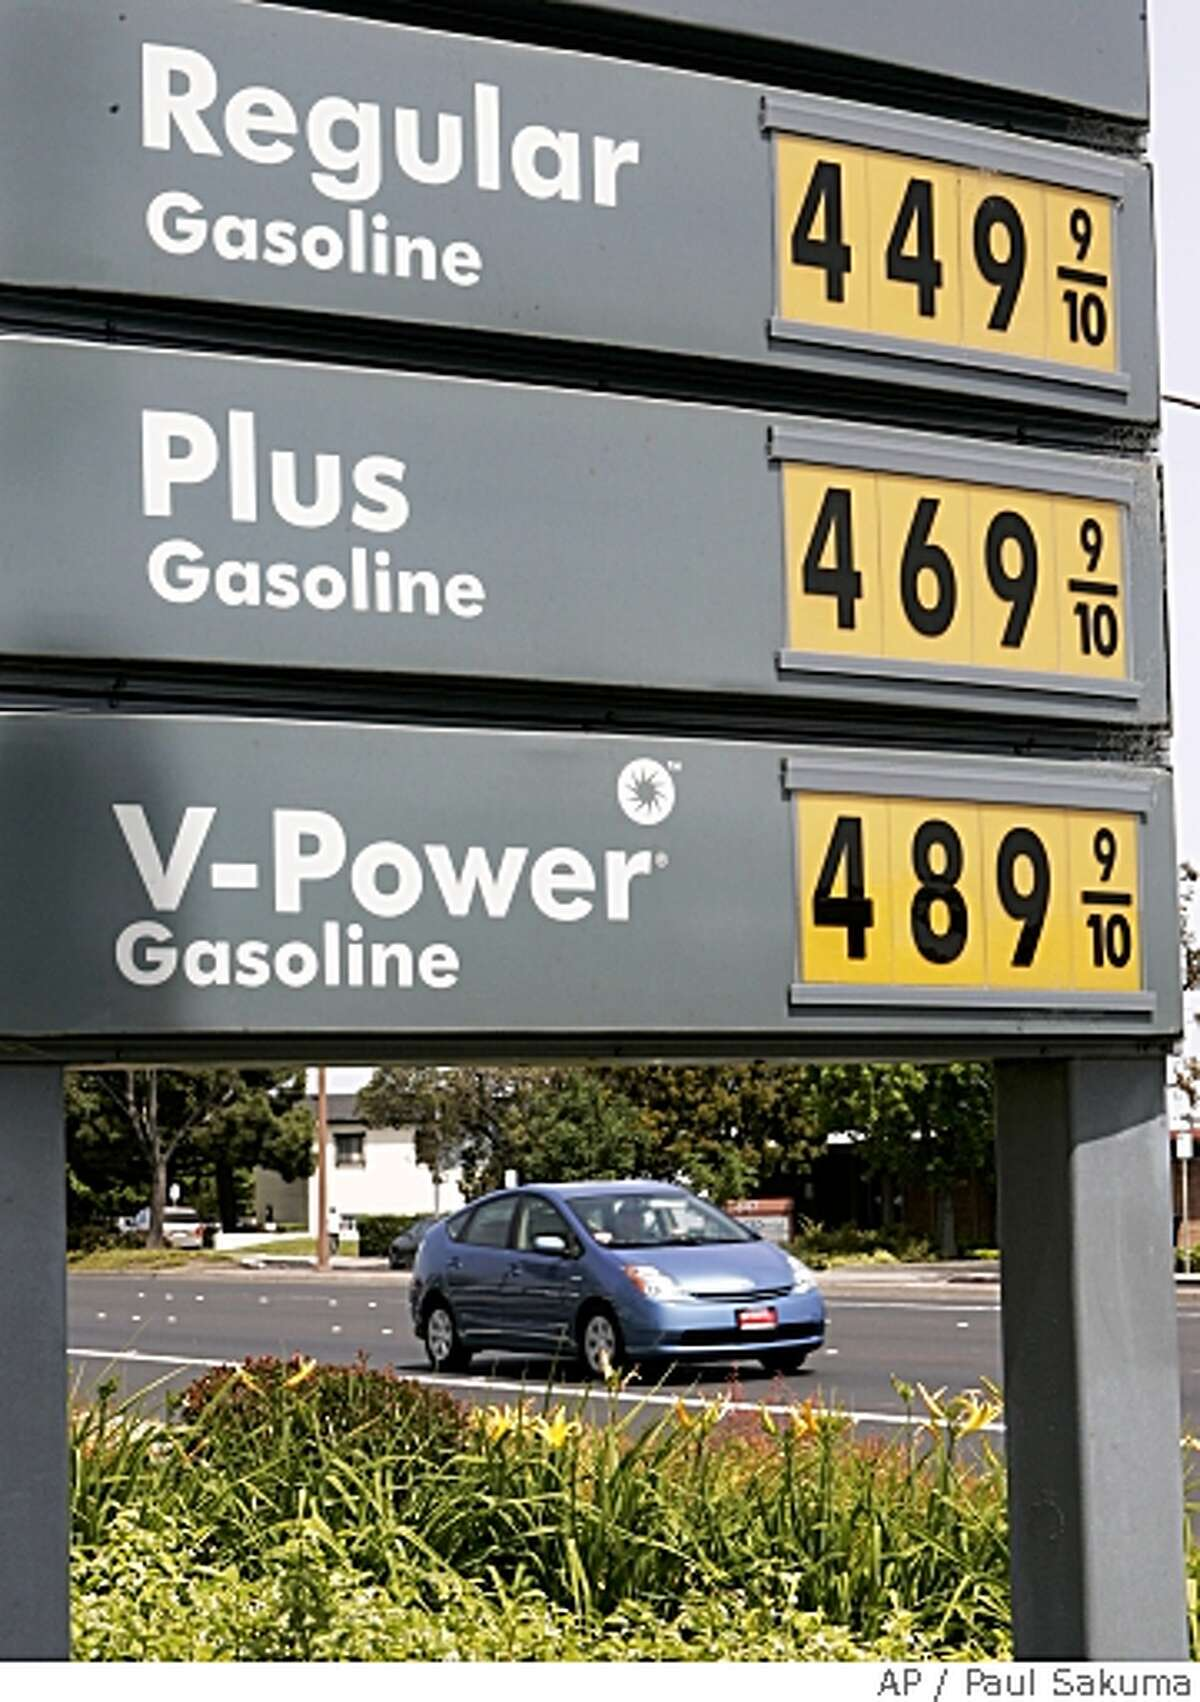 High gas prices are posted at a Shell gas station in Redwood City earlier this month. Associated Press photo by Paul Sakuma